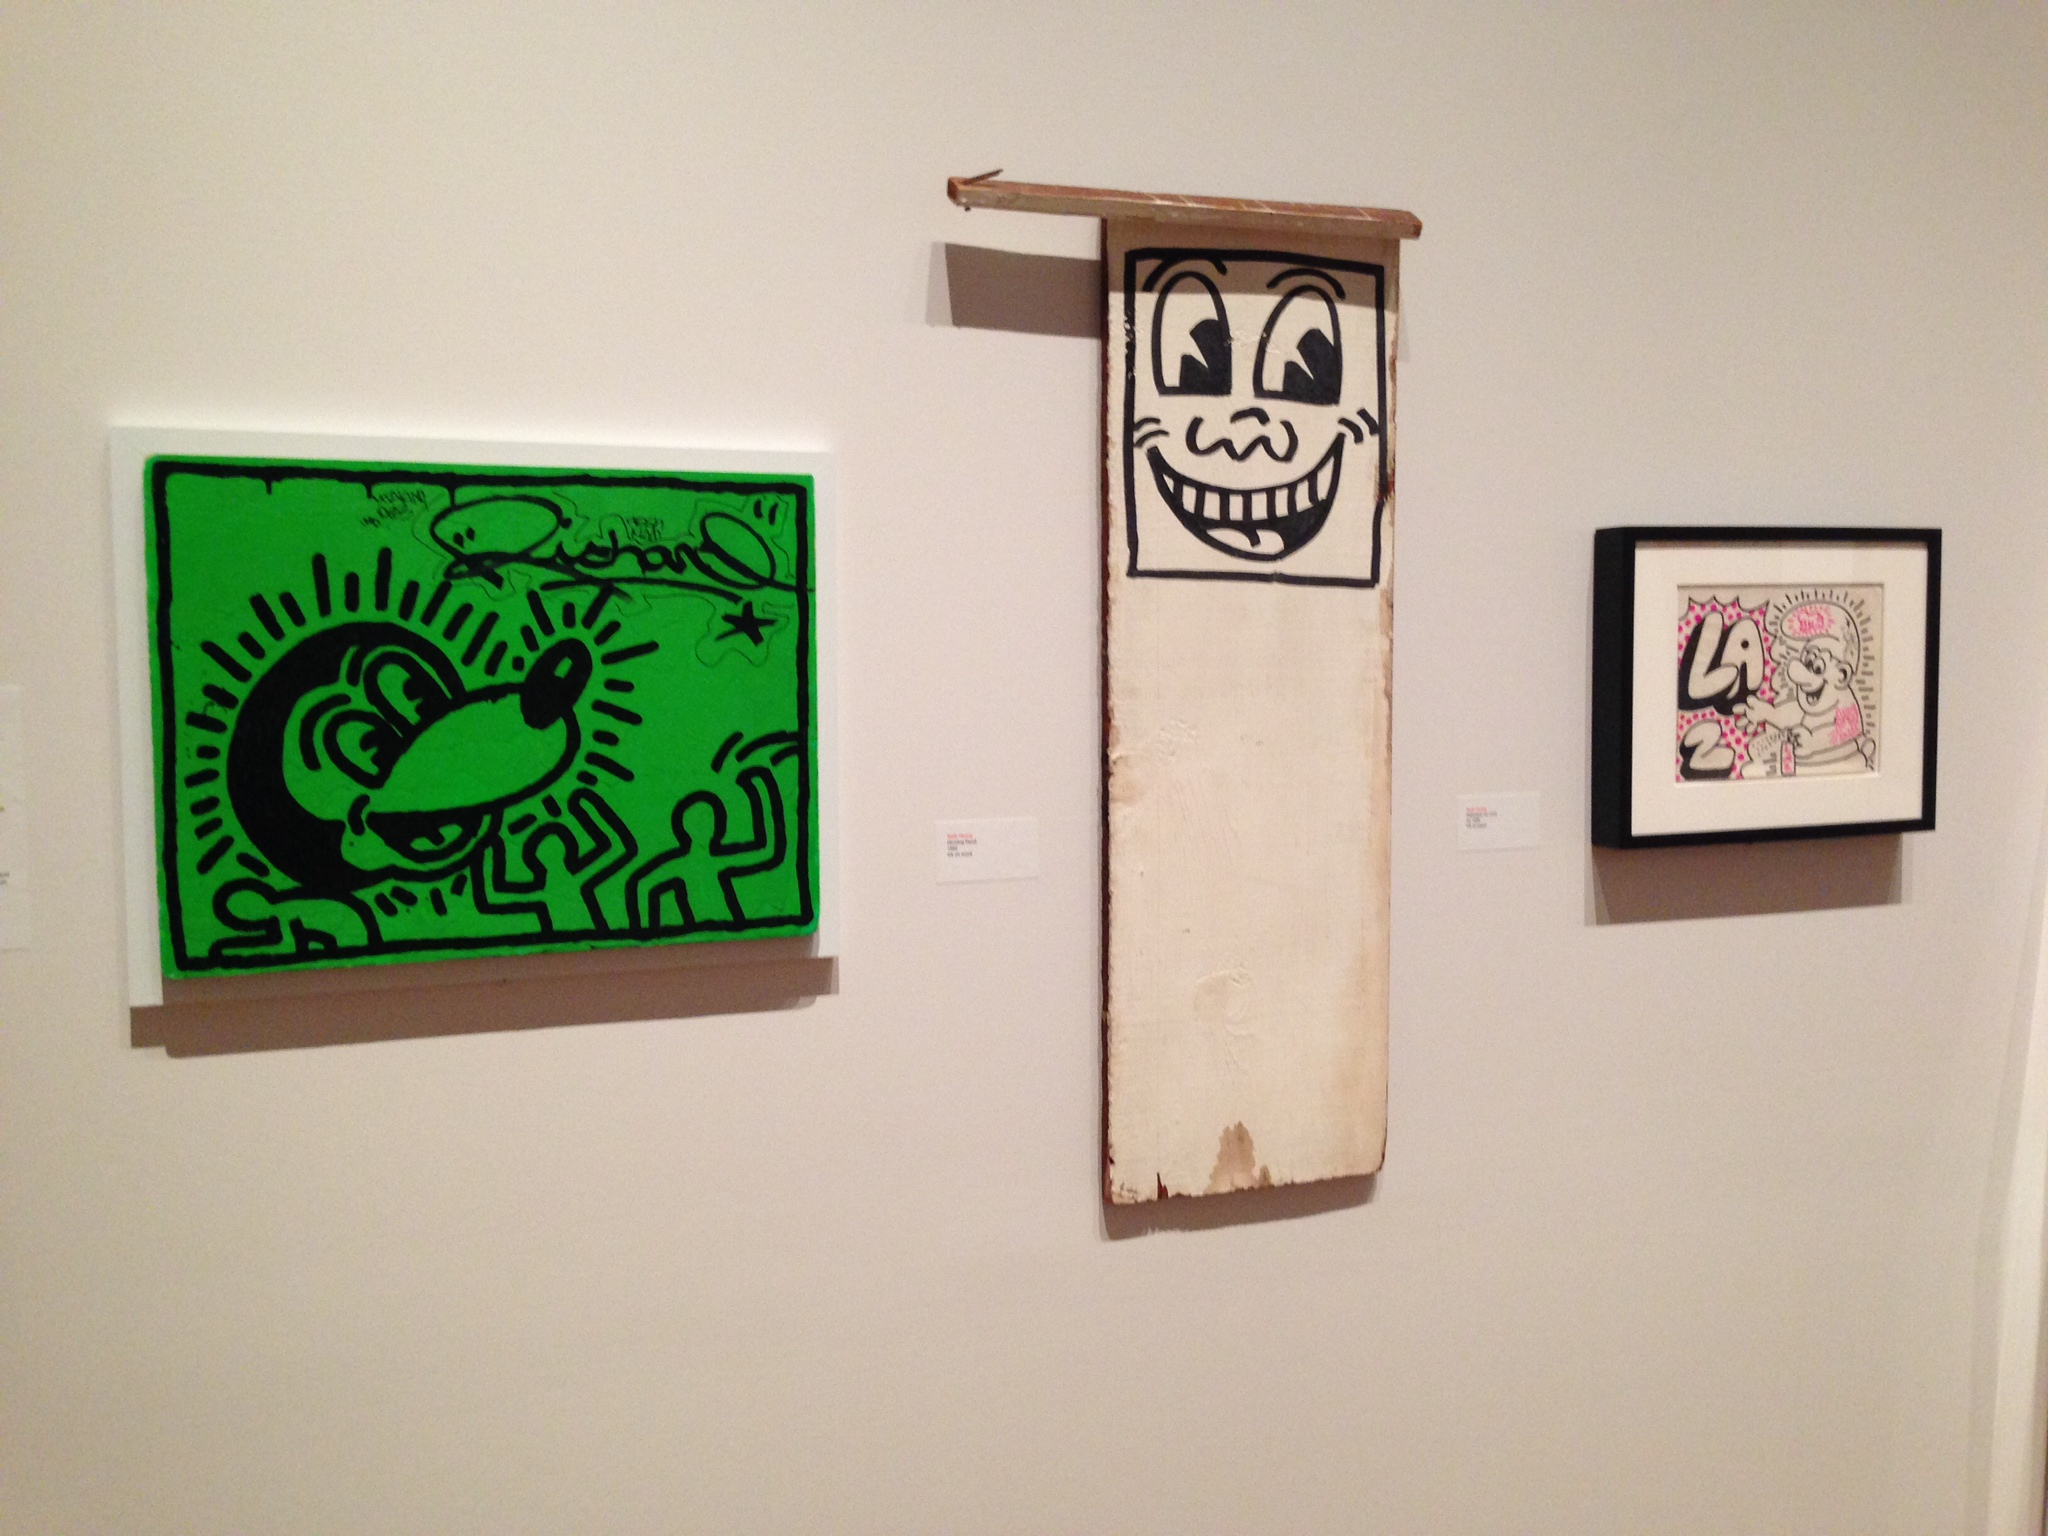 Three of the Keith Haring pieces in Wong's collection. It's so cool to see artworks like these that still feel so gritty and so New York.